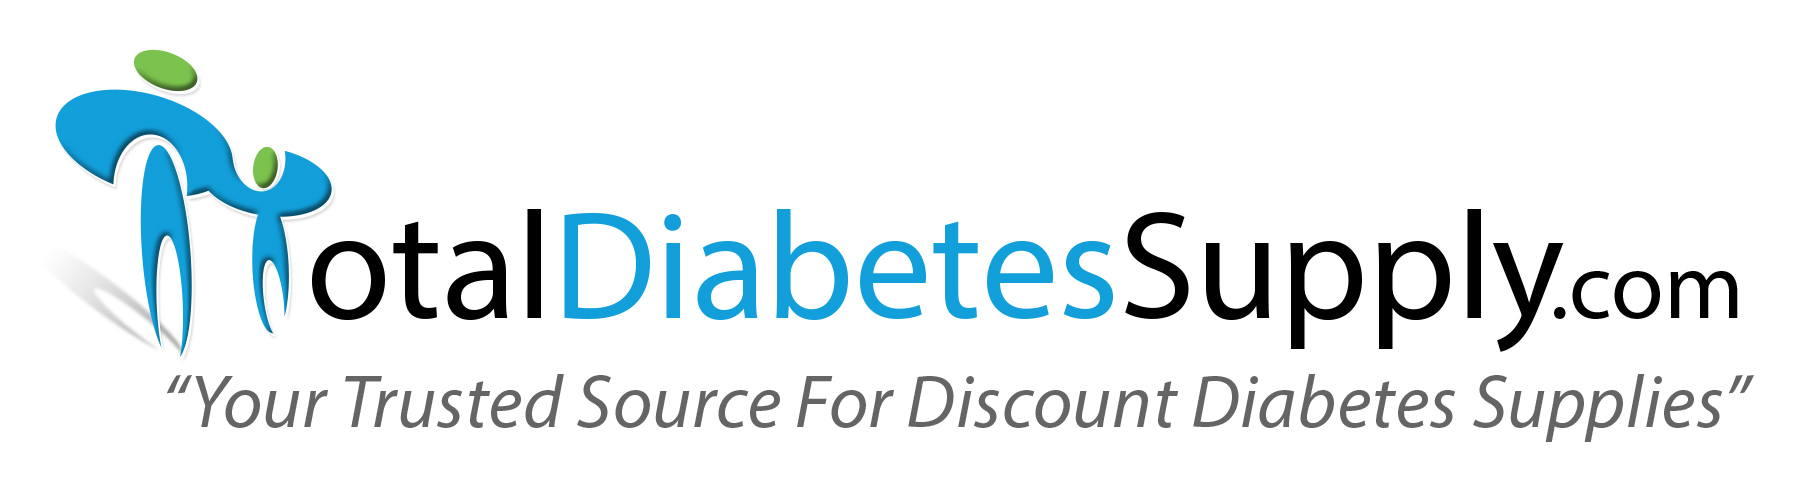 7.Total Diabetes Supply